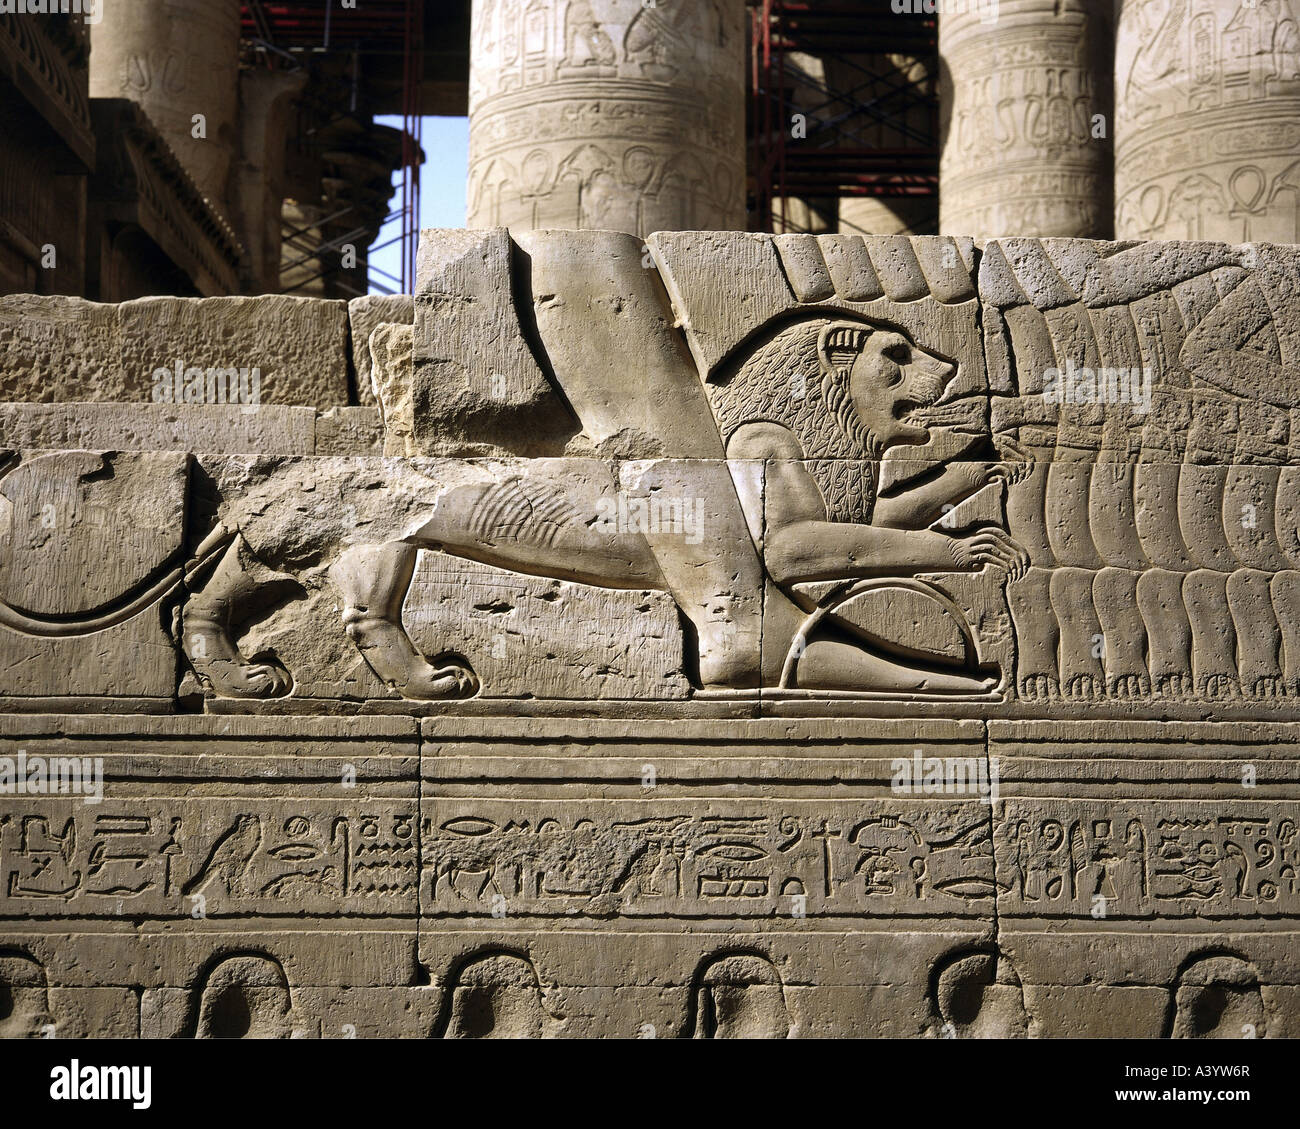 travel /geography, Egypt, Kom Ombo, buildings, temple of Kom Ombo for gods Sobek and Haroeris, exterior view, relief, - Stock Image